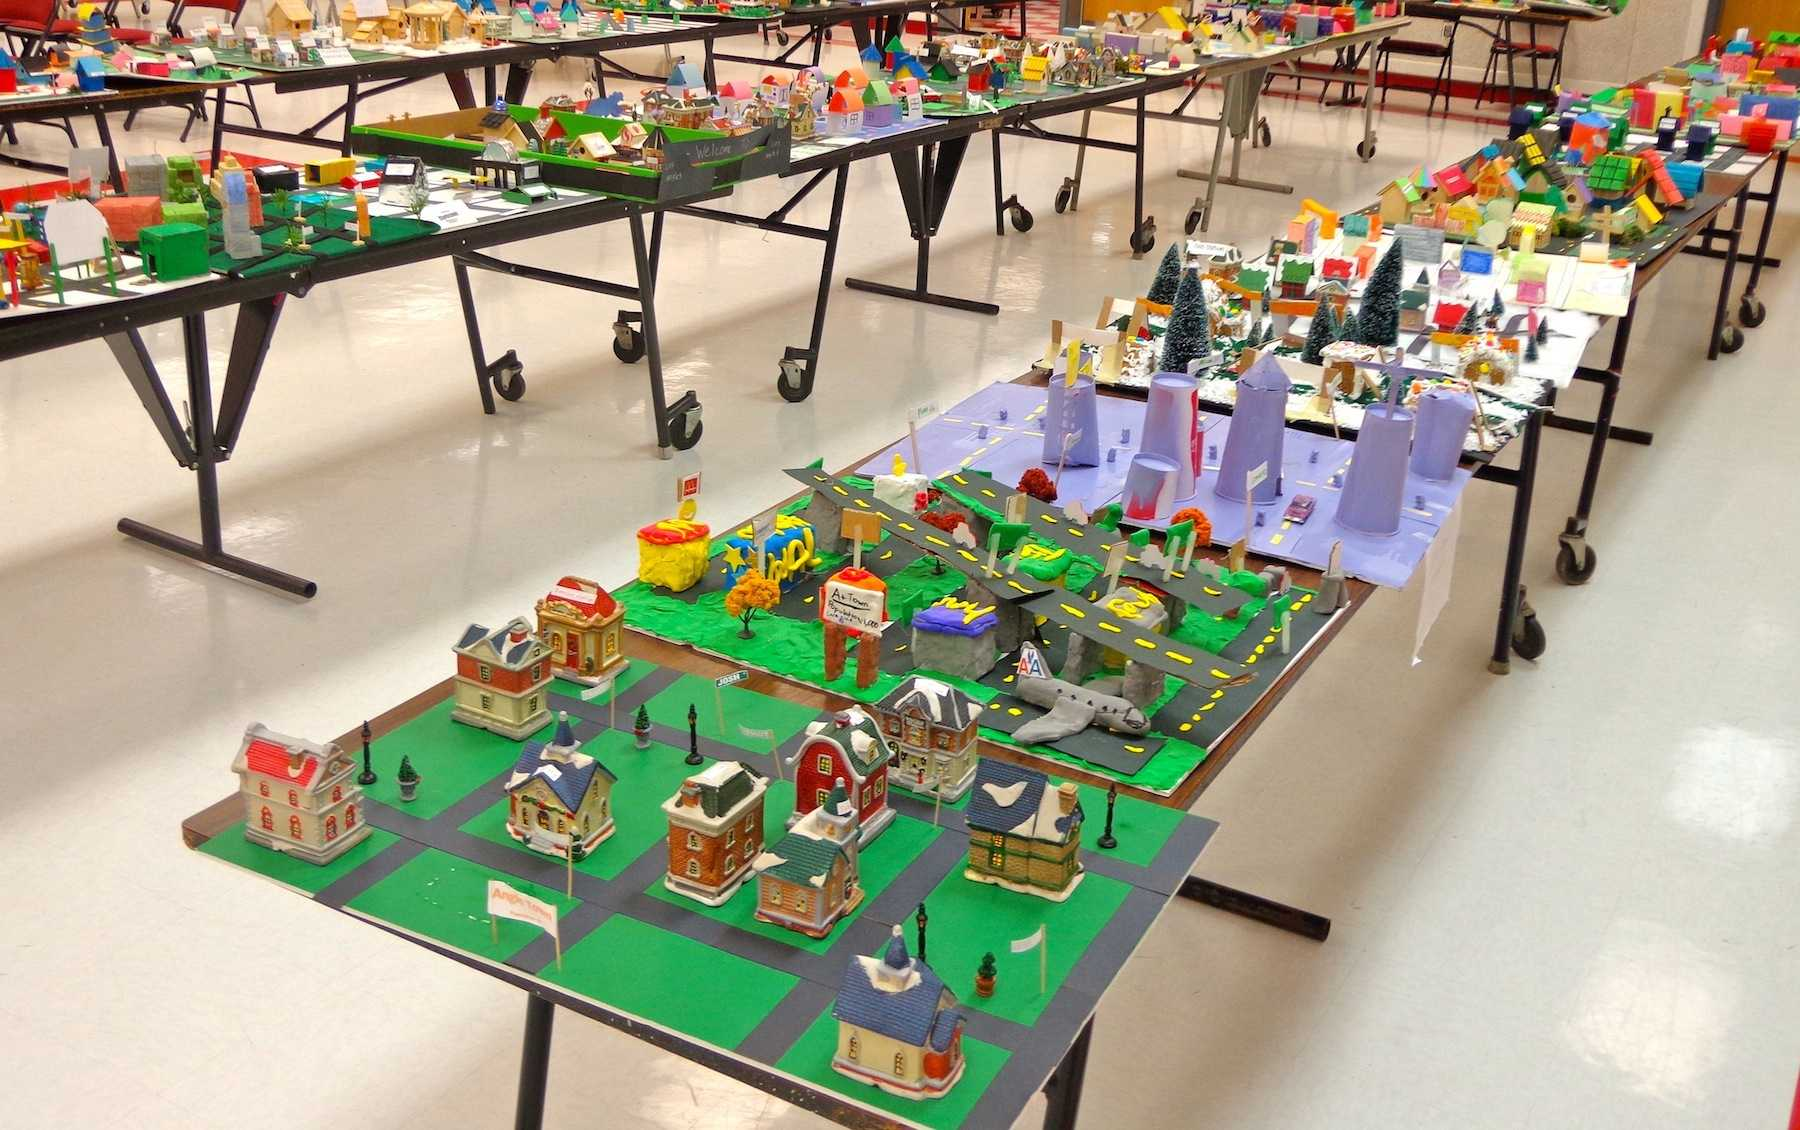 Clausen Hall was full of several geometry projects in the morning through the early afternoon.